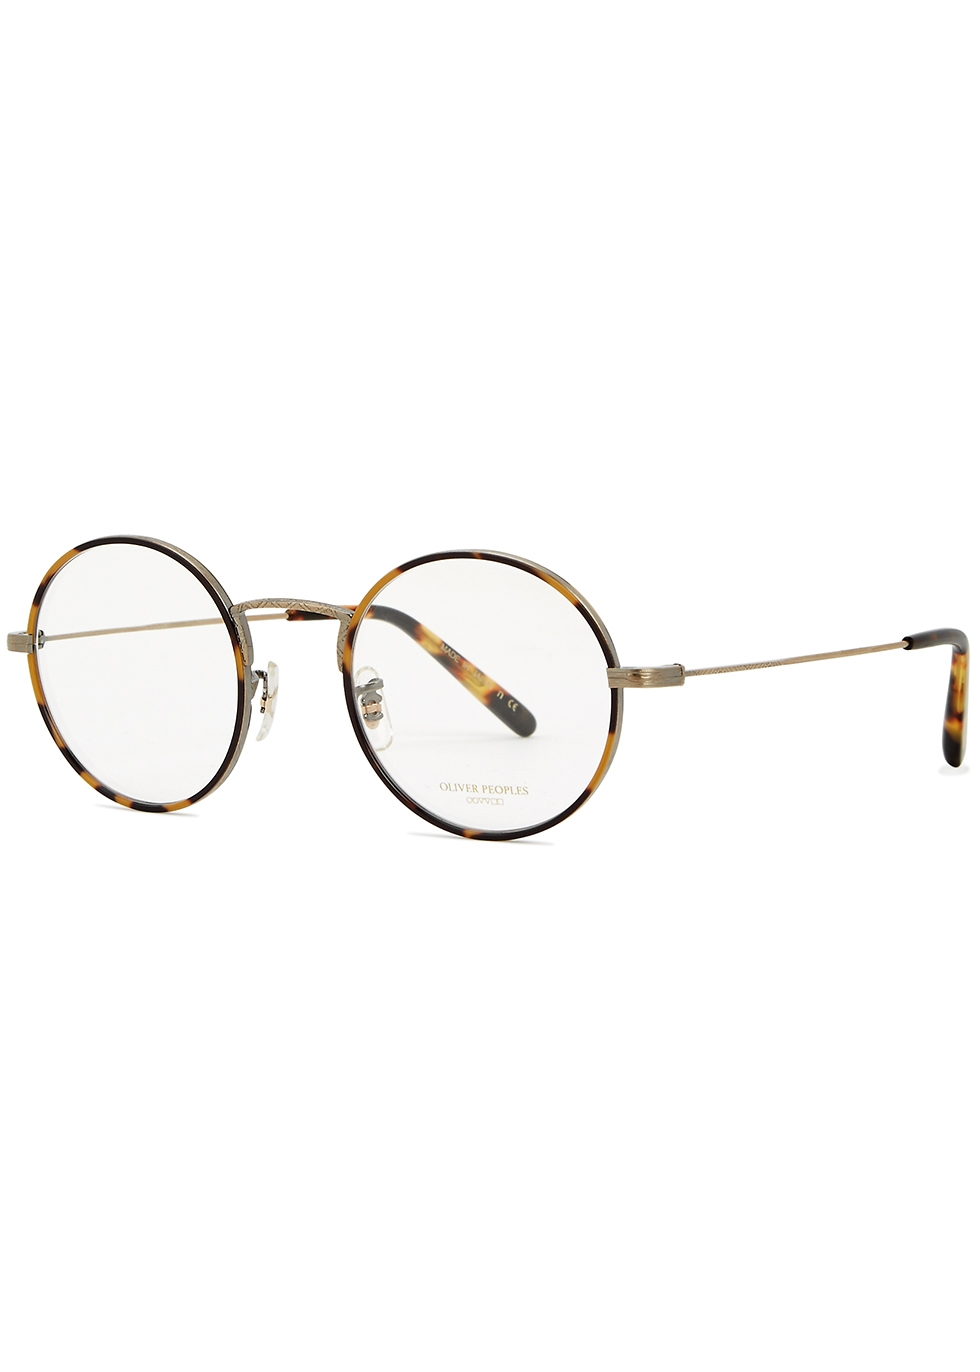 Ellerby tortoiseshell optical glasses - Oliver Peoples